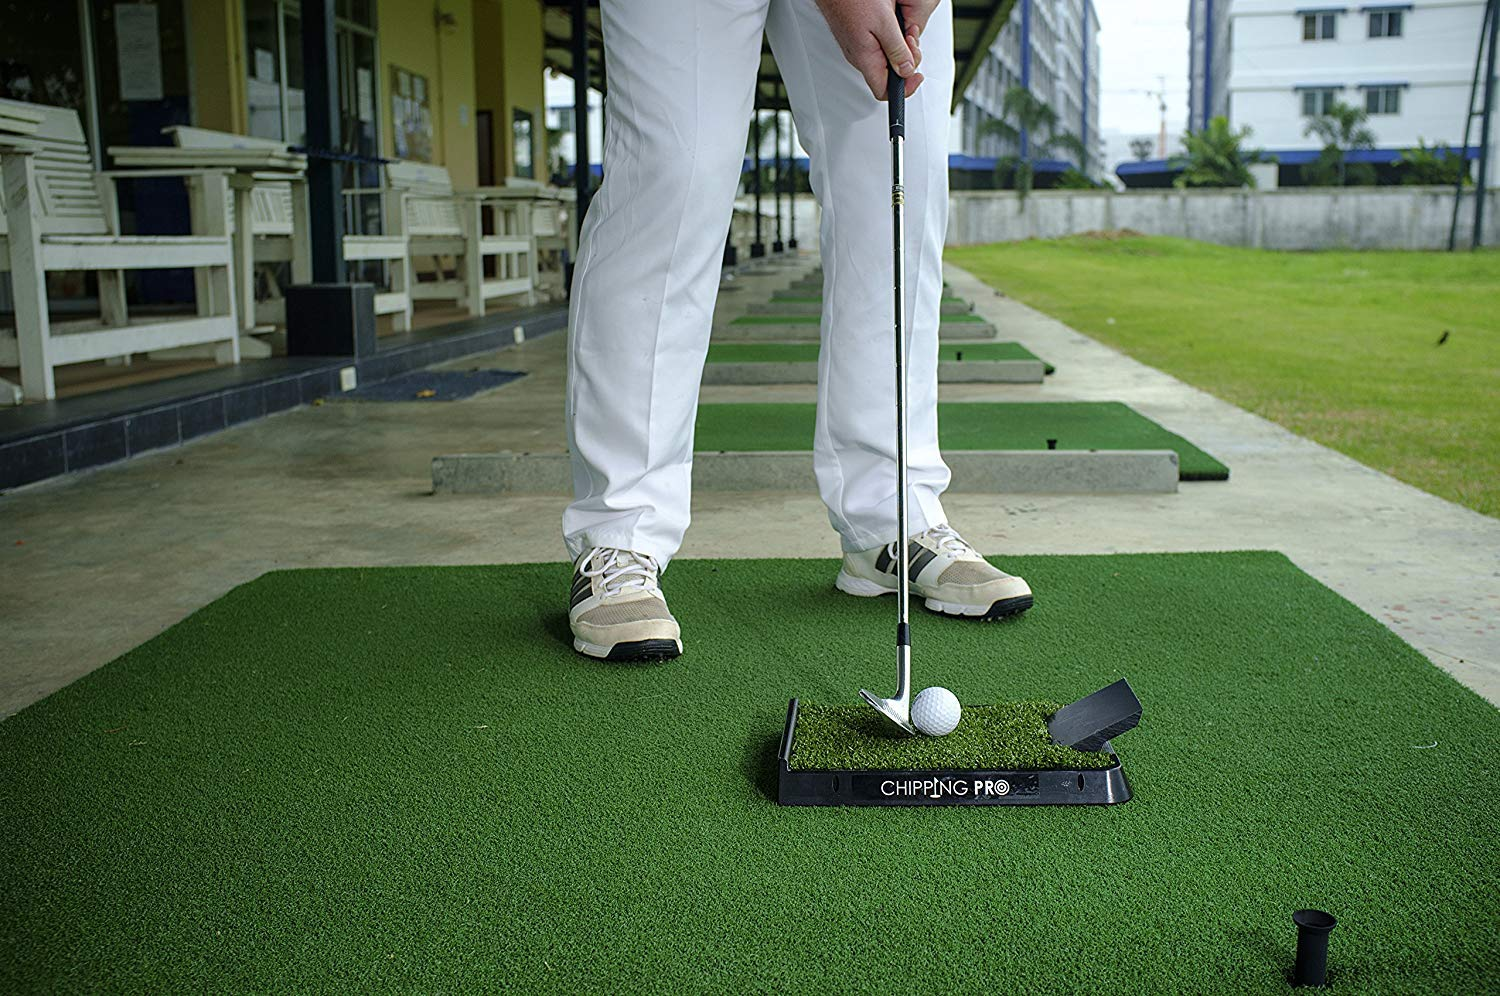 Chipping Pro Mat